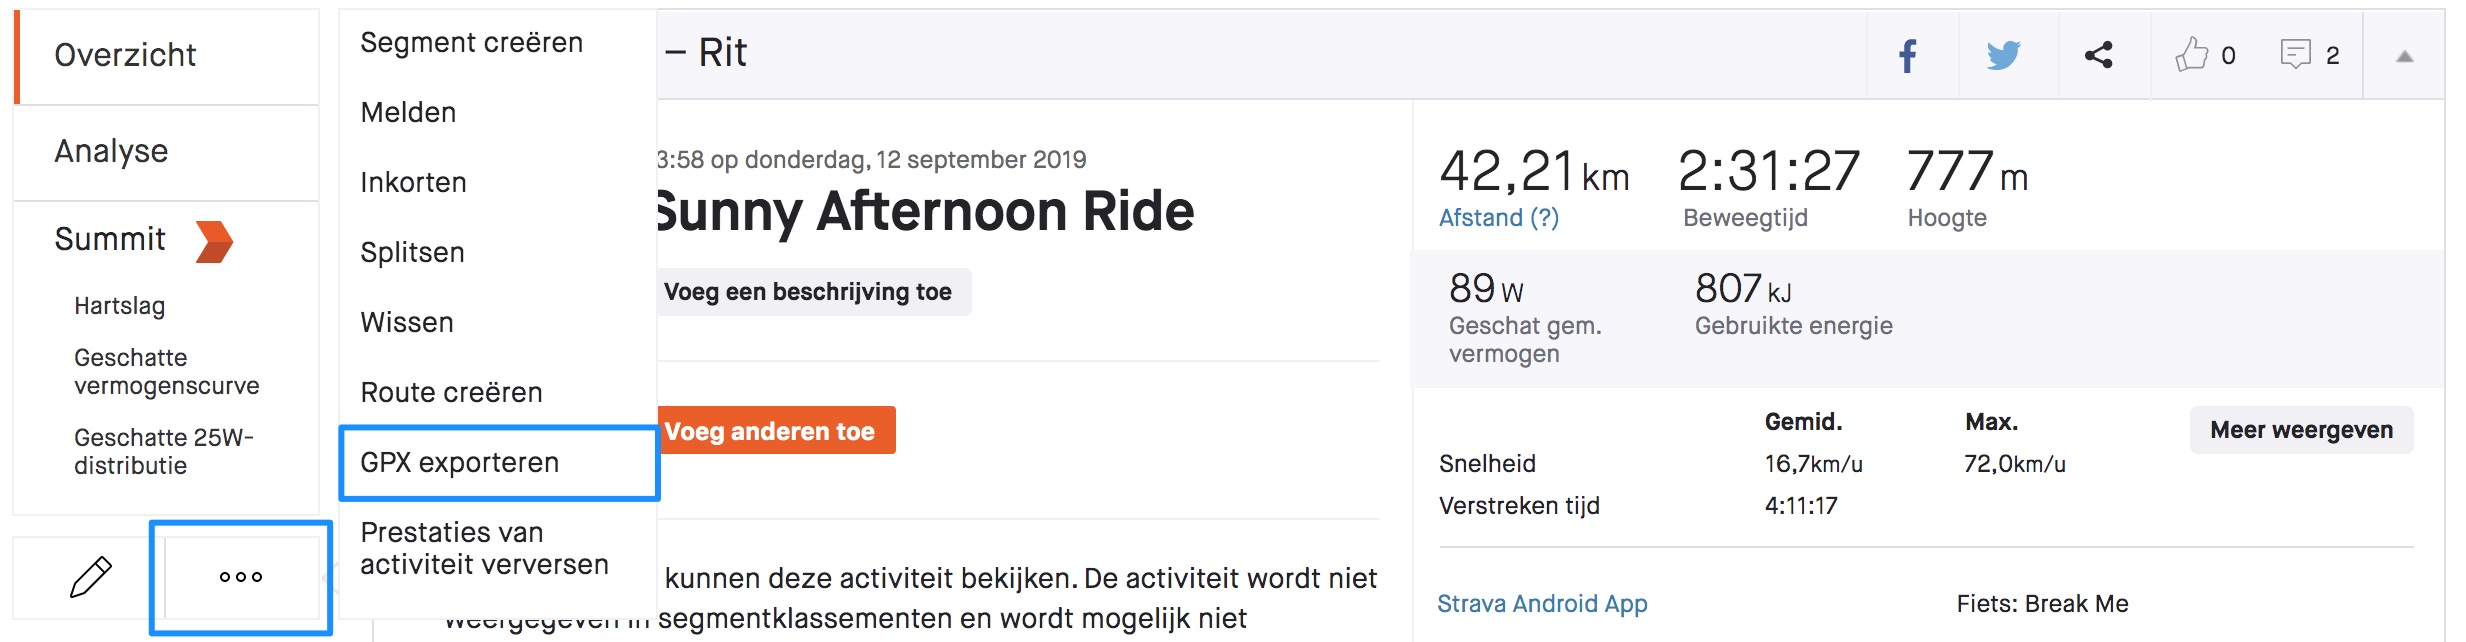 Banners_and_Alerts_and_Sunny_Afternoon_Ride___Rit___Strava.jpg